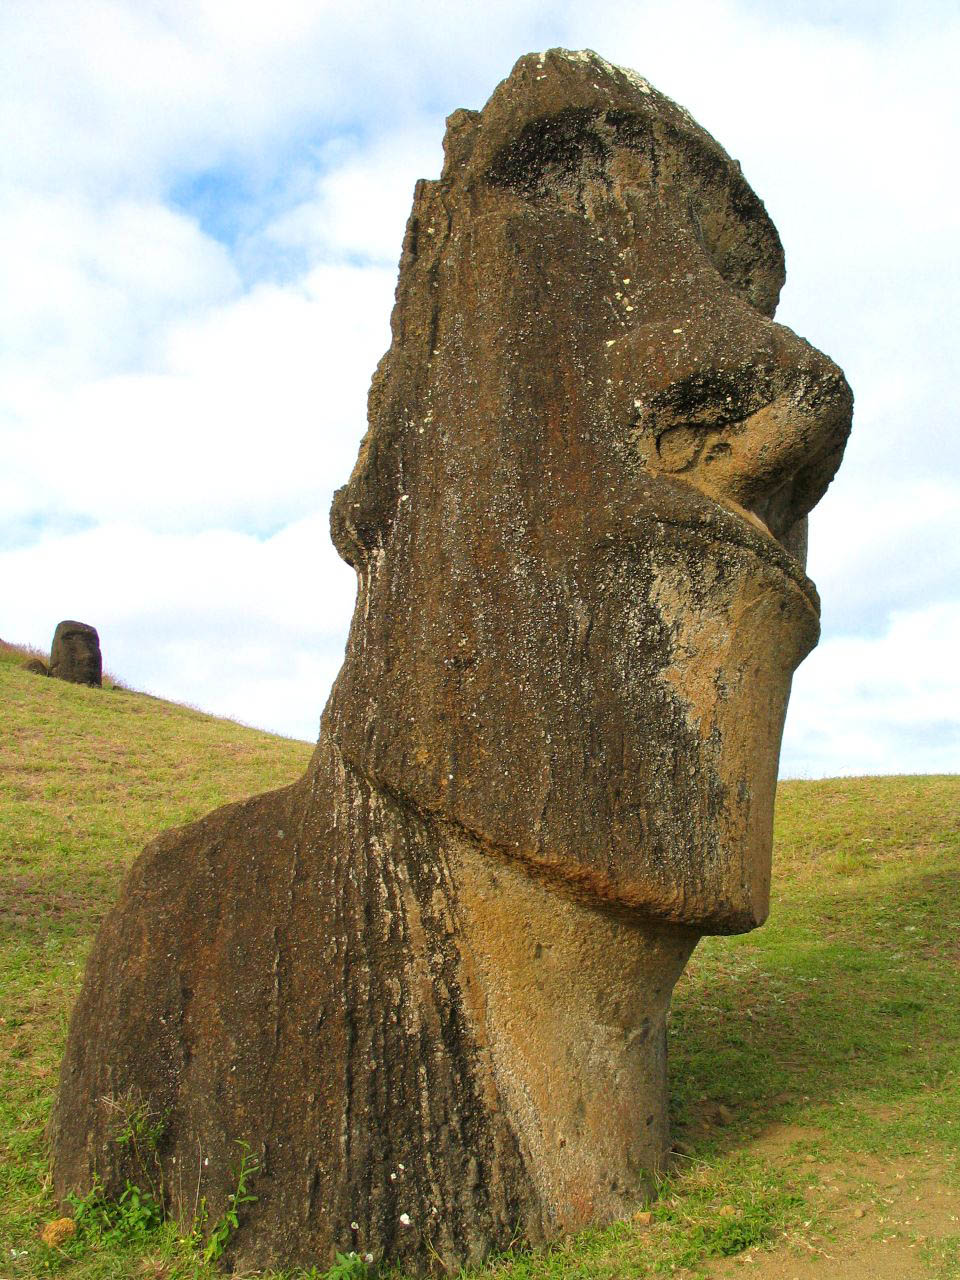 rapa nui2 Gigantic Moai Statues and Heads in Polynesian Easter Island